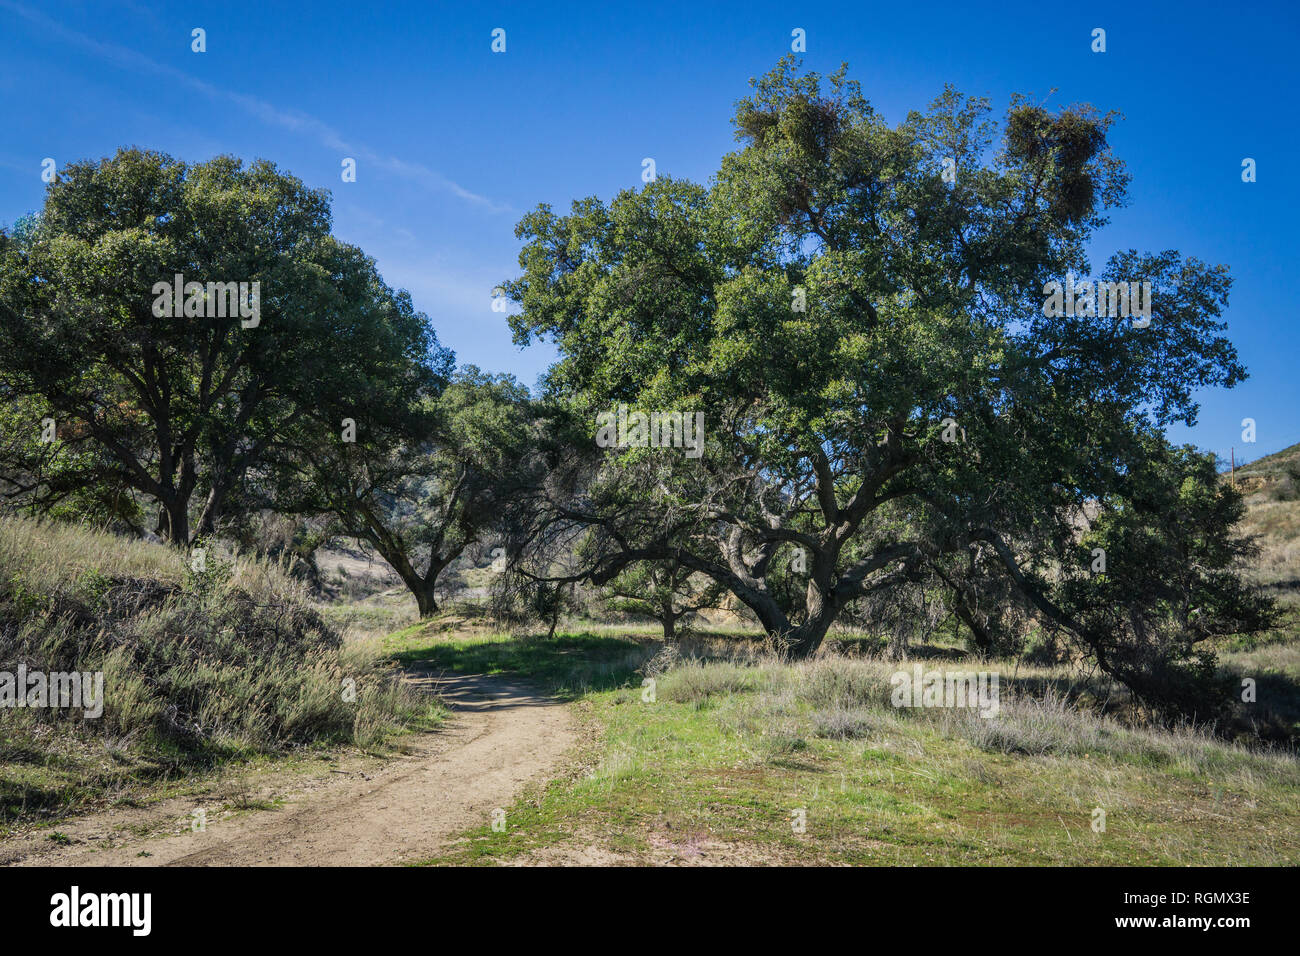 Green oak trees stand above dirt walking trail in Placerita Canyon. - Stock Image